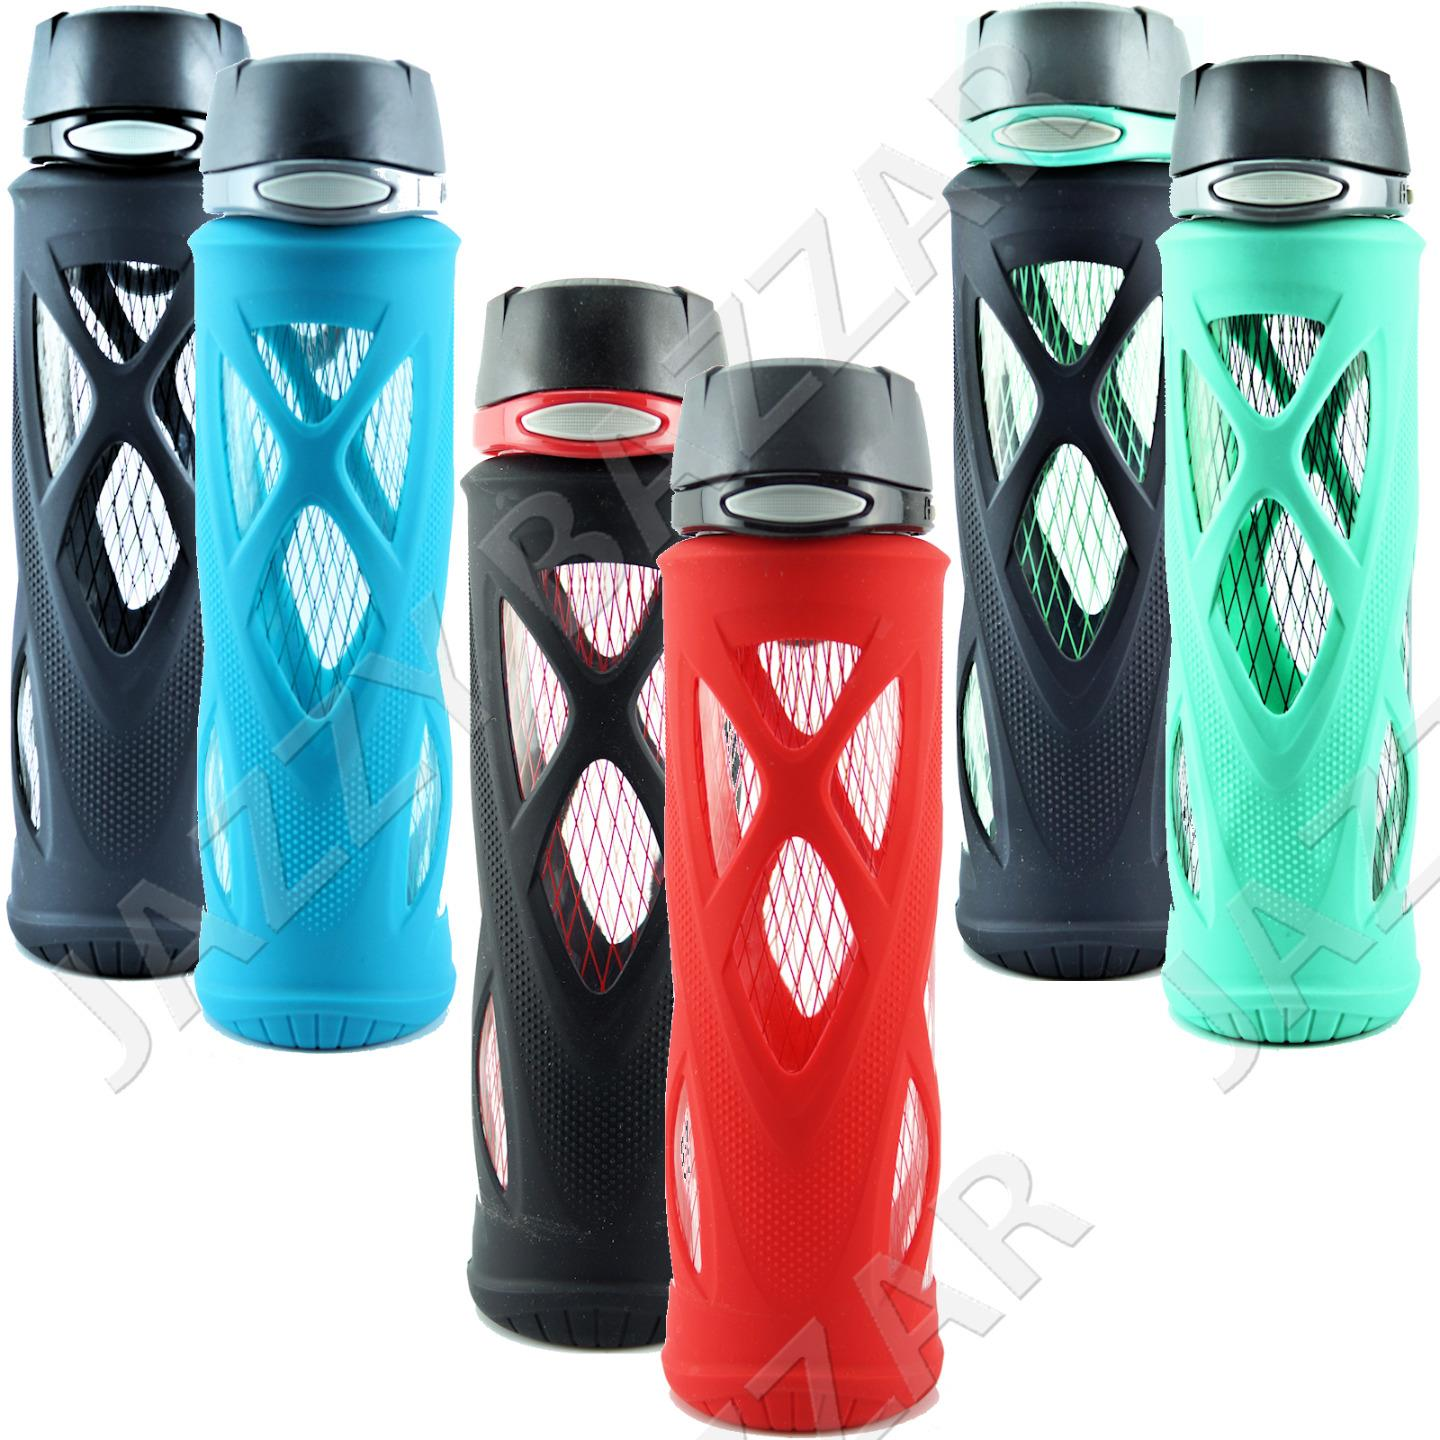 glass water bottle 2 zulu drinking drink bottles sports eco 590ml bpa bps free ebay. Black Bedroom Furniture Sets. Home Design Ideas